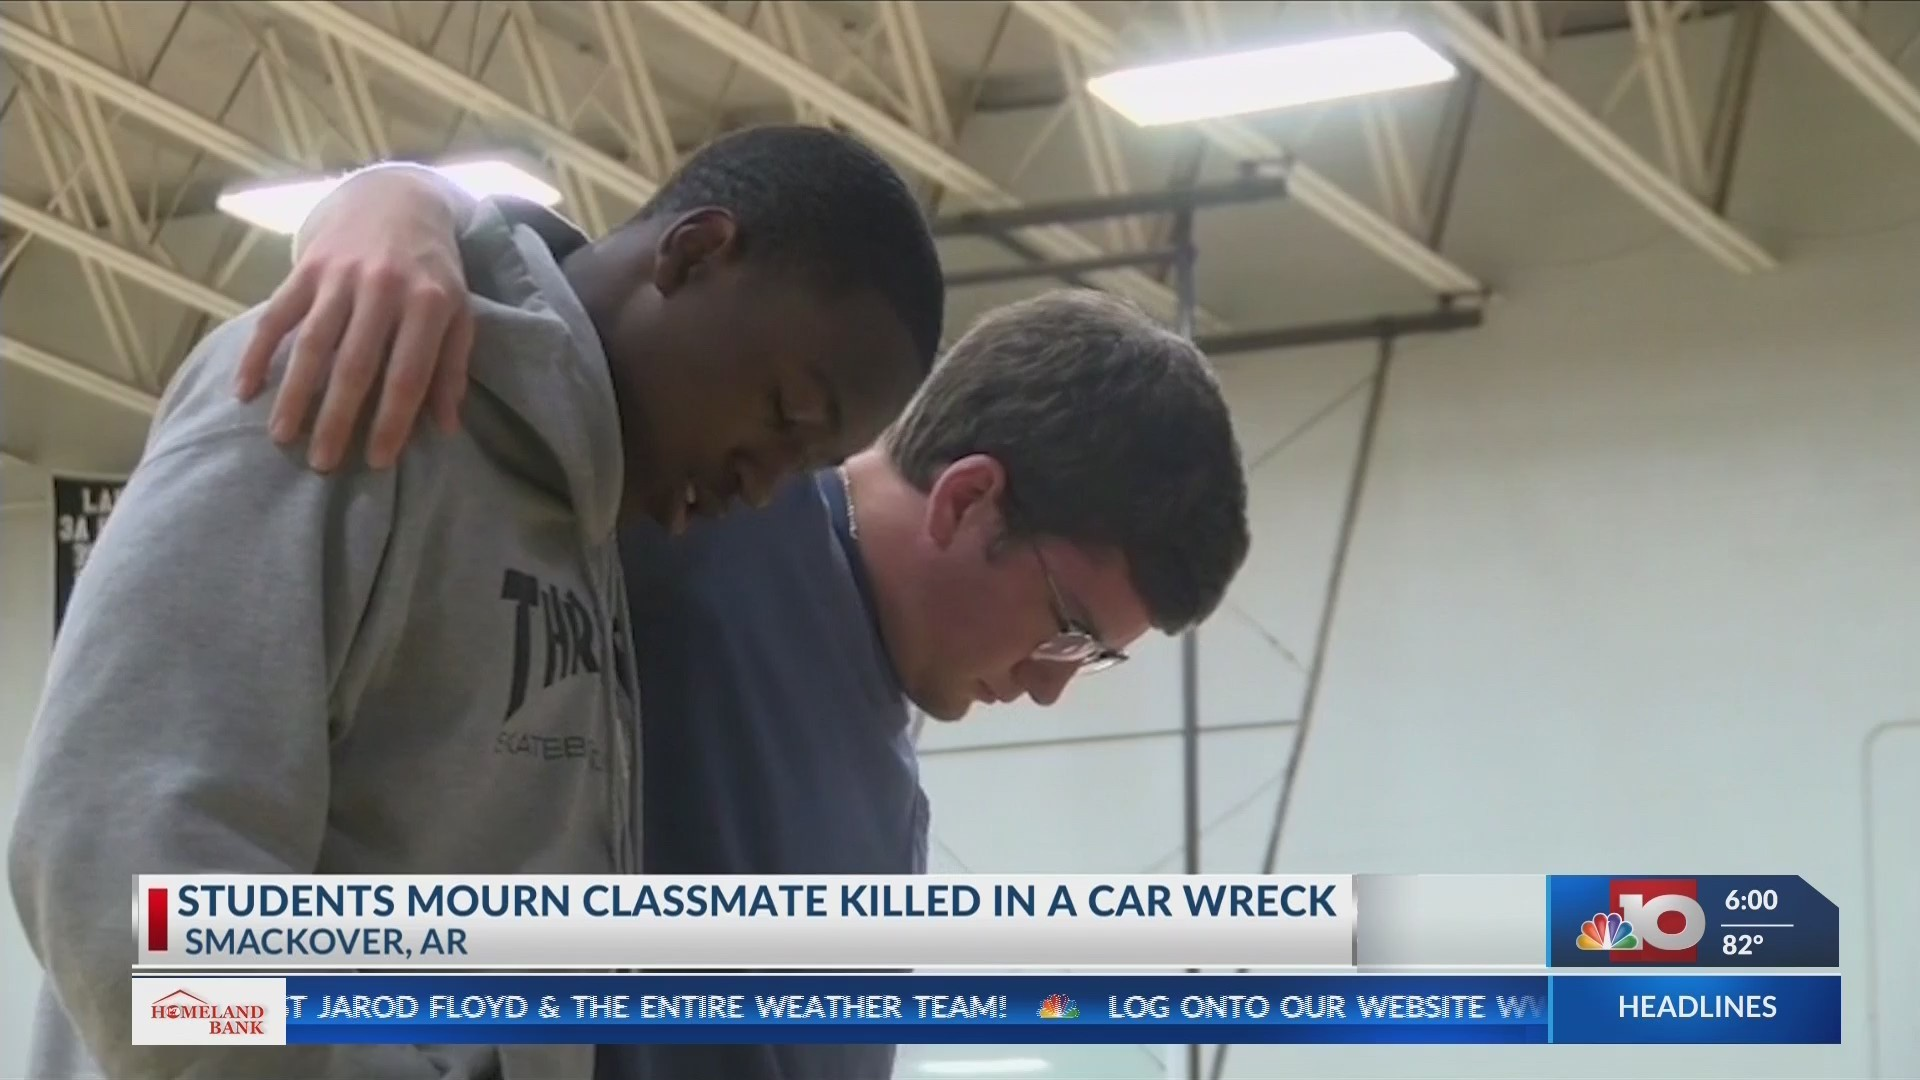 Students mourn the loss of a classmate killed in a vehicle accident